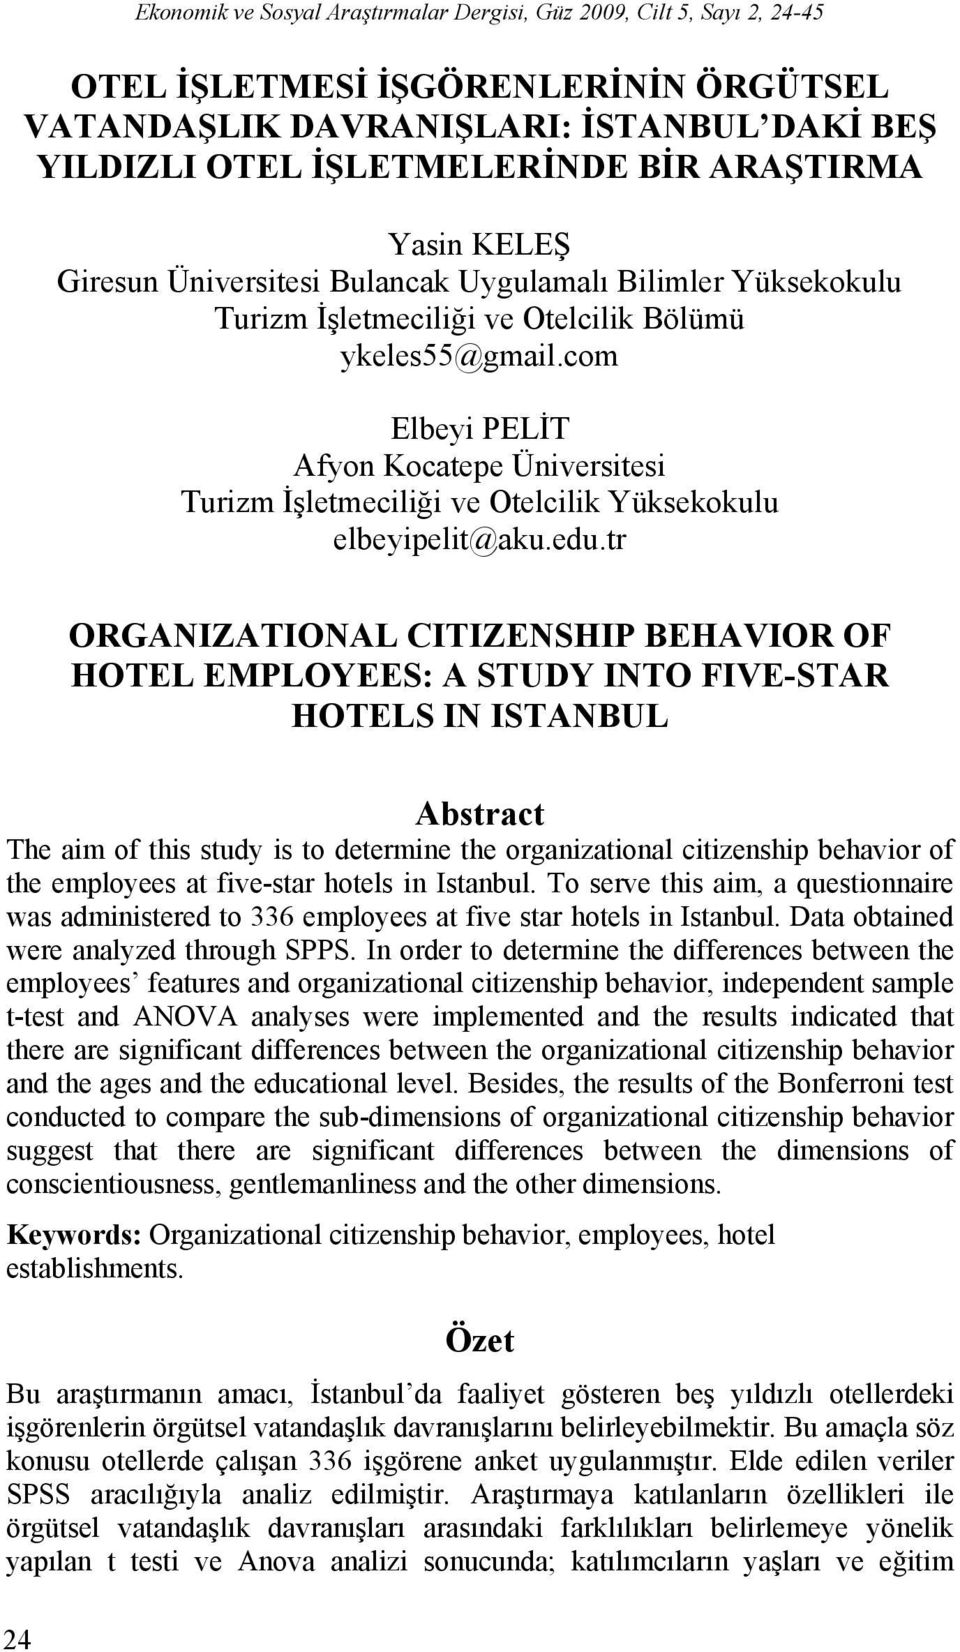 tr ORGANIZATIONAL CITIZENSHIP BEHAVIOR OF HOTEL EMPLOYEES: A STUDY INTO FIVE-STAR HOTELS IN ISTANBUL Abstract The aim of this study is to determine the organizational citizenship behavior of the